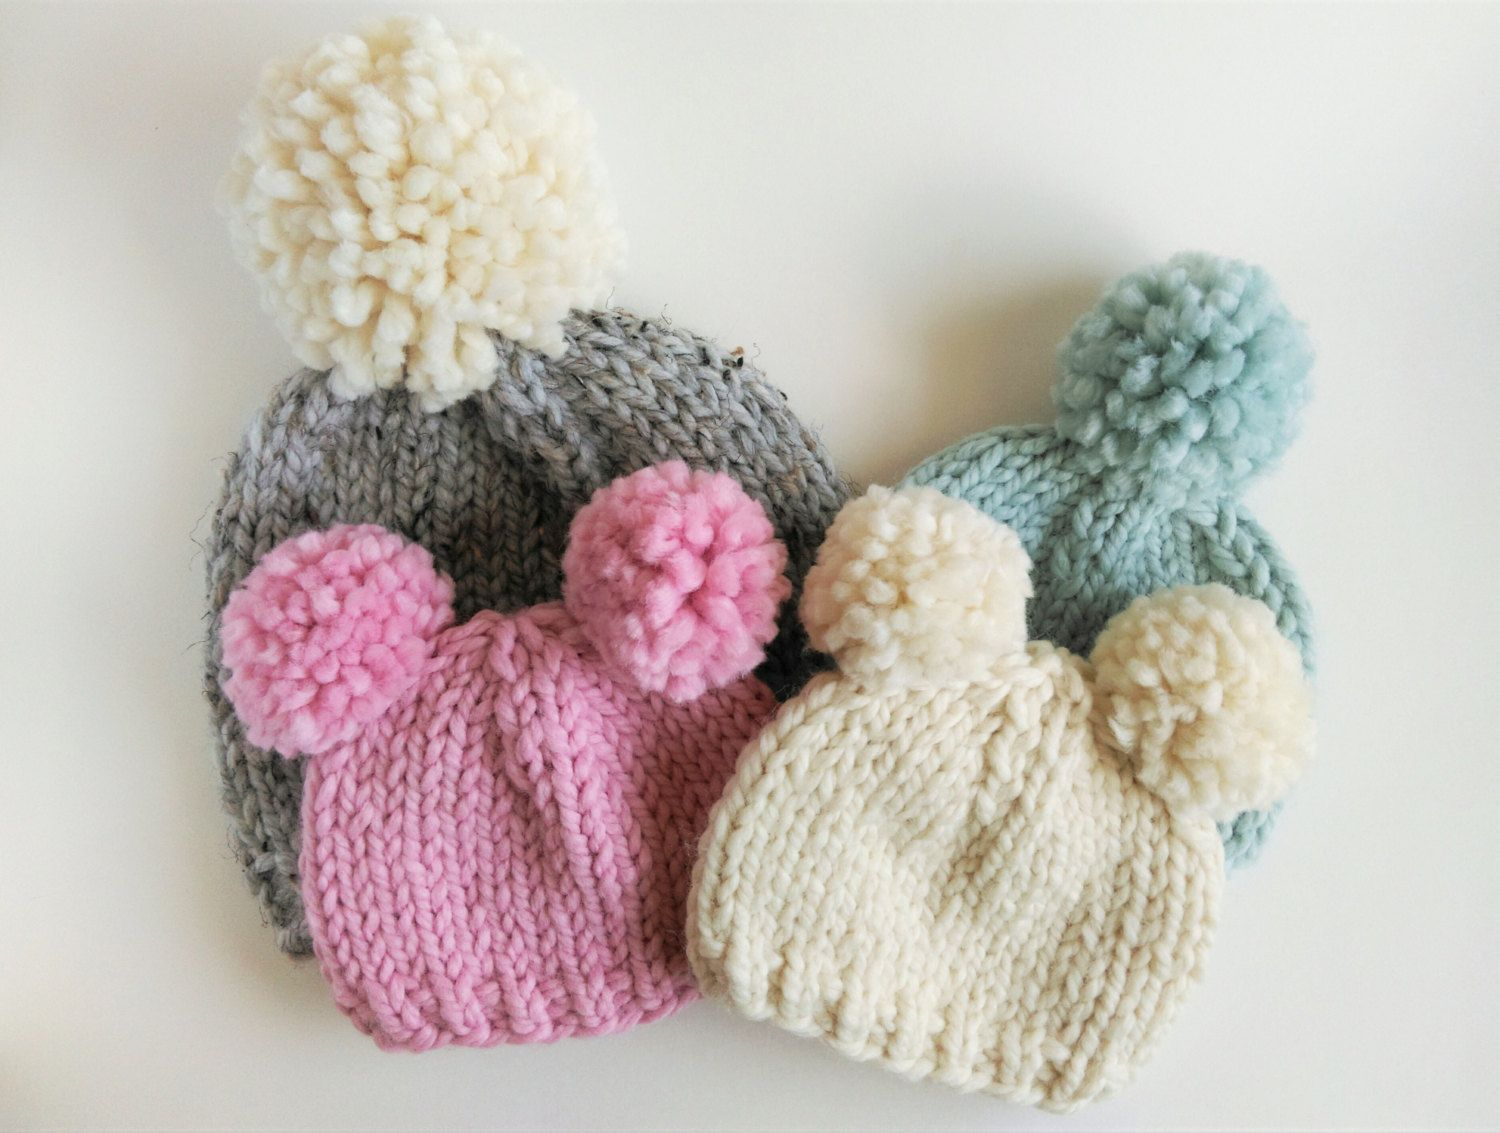 Knitting Pattern    Chunky Pom Pom Hat    Double Pom Pom Hat Pattern     Chunky Knit Hat    Hats for Kids    Hats for Toddlers 03c7bd7cea9